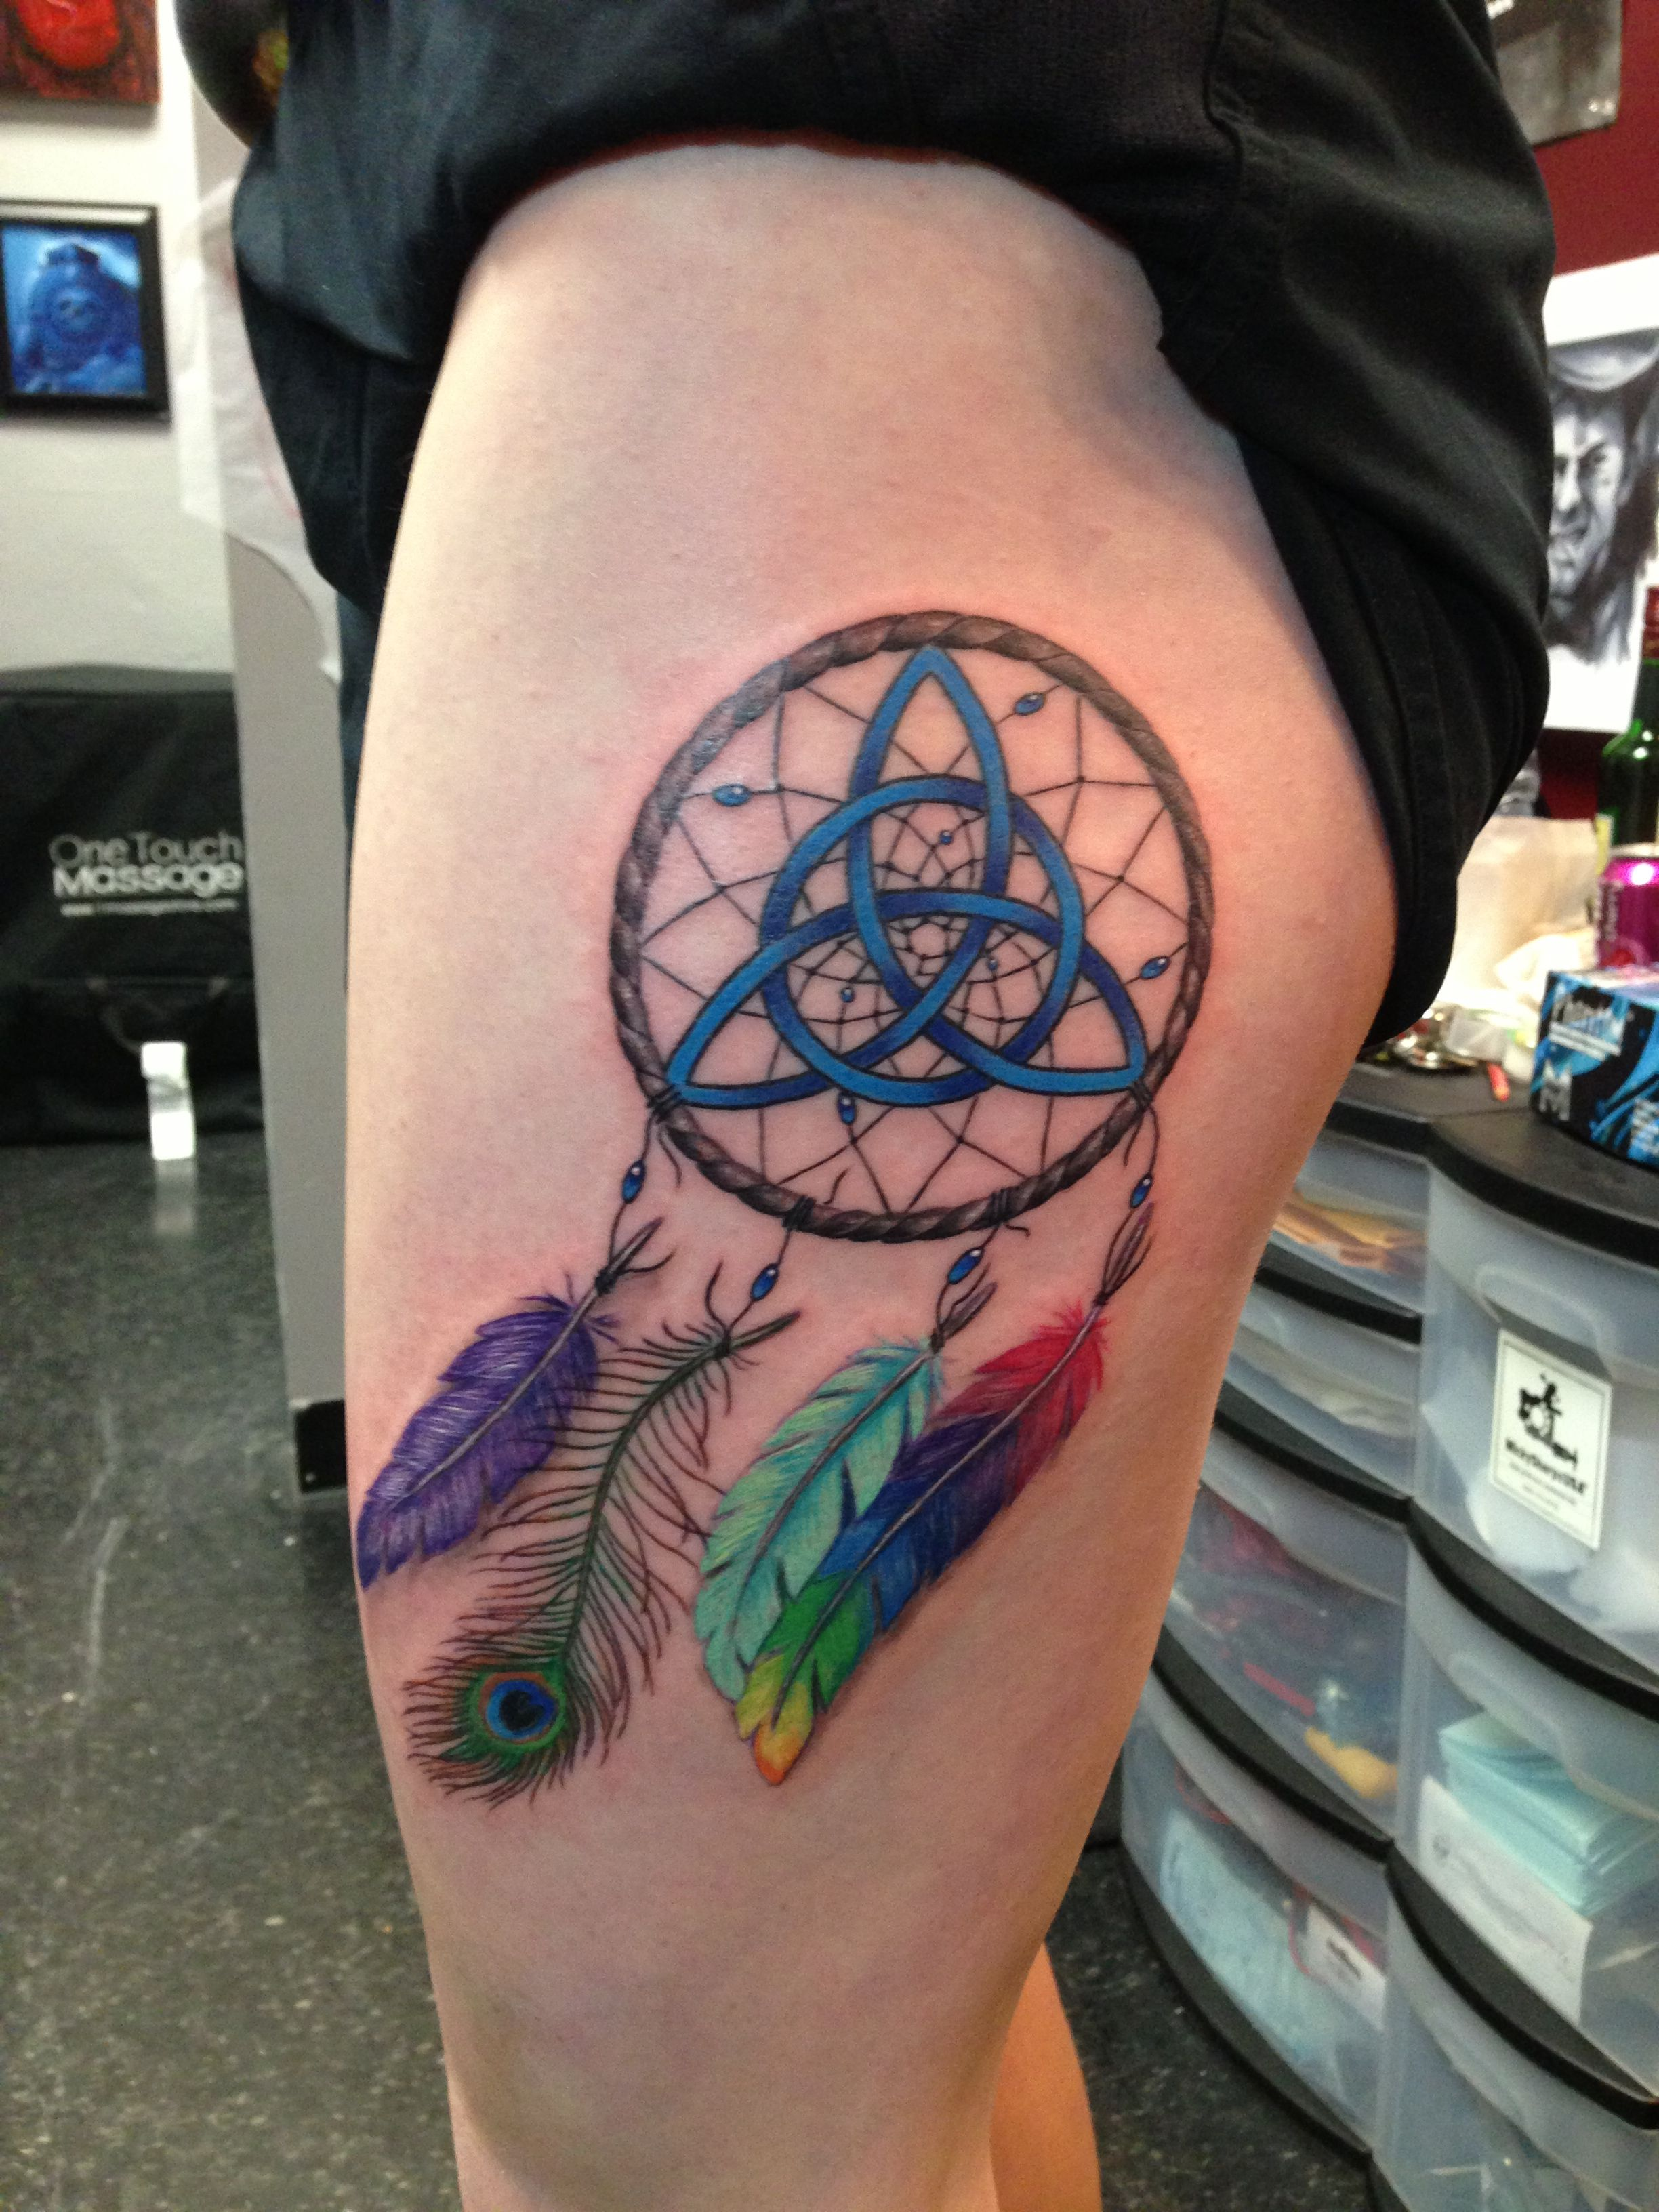 e7a7984556738 Irish and colorful Dreamcatcher tattoo for my birthday! It's perfect ...